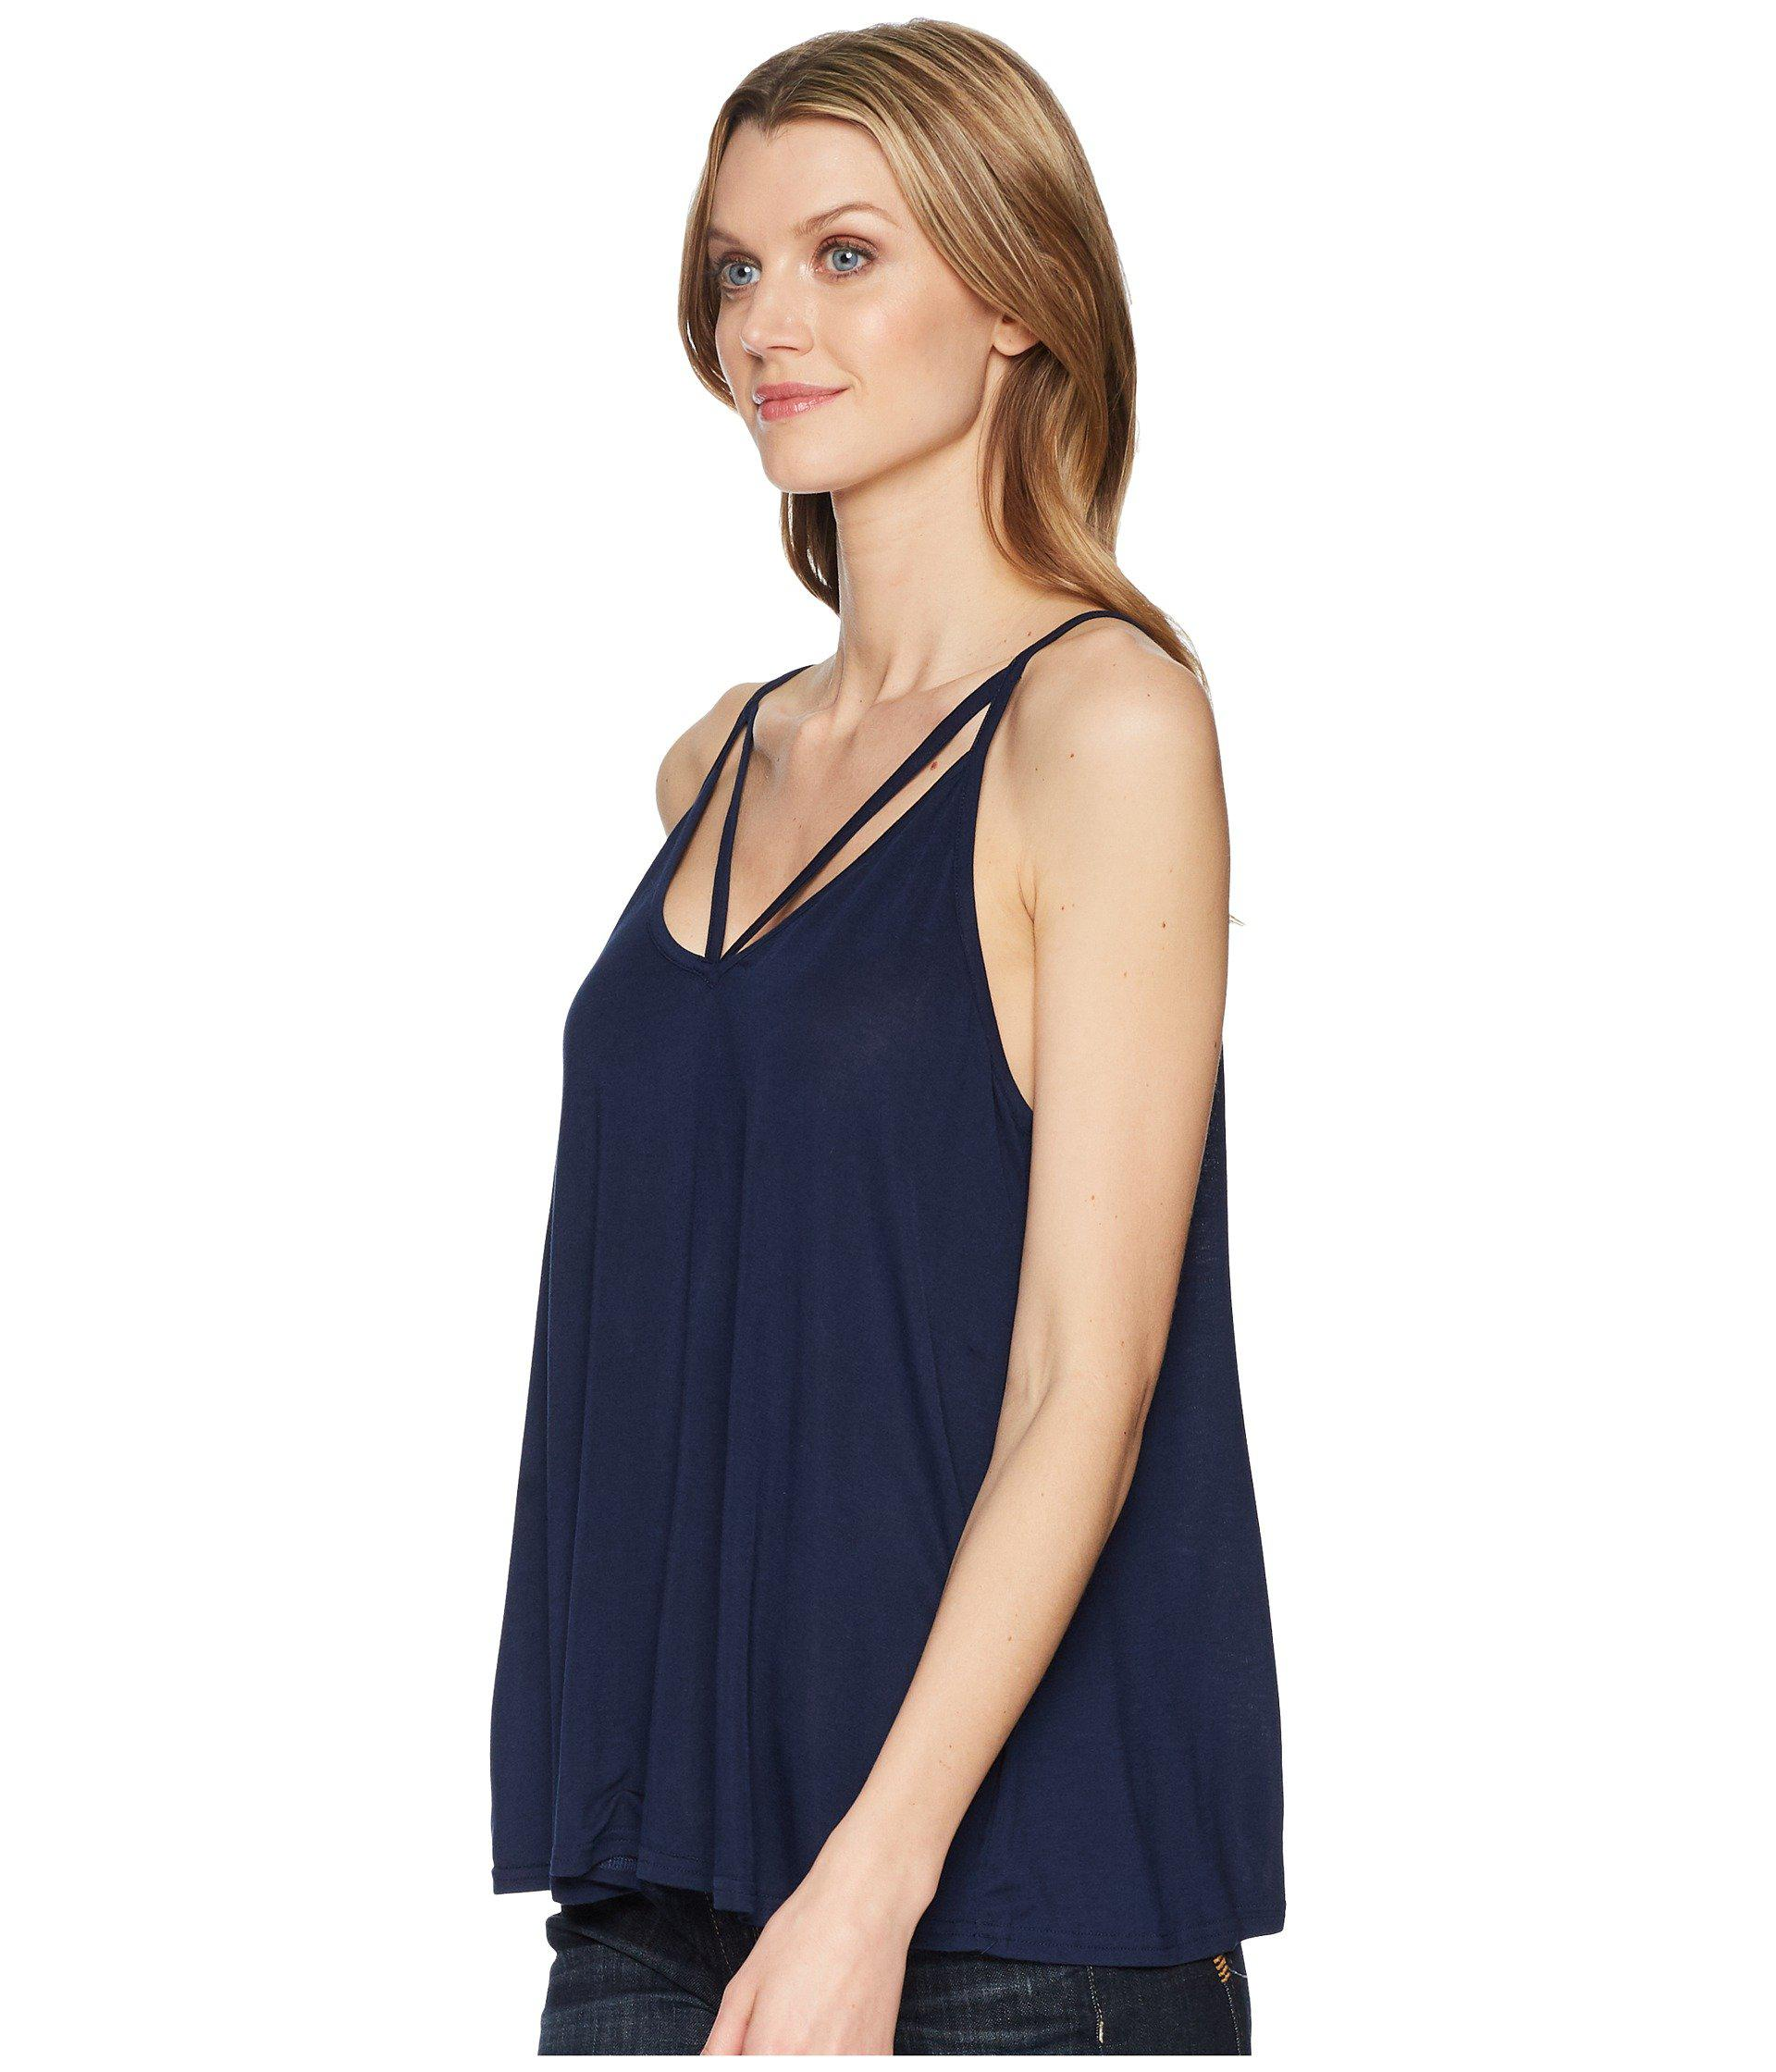 1ff02ccccc4ee Lyst - Stetson 1578 Rayon Knit V-neck Strappy Tank Top in Blue - Save 44%